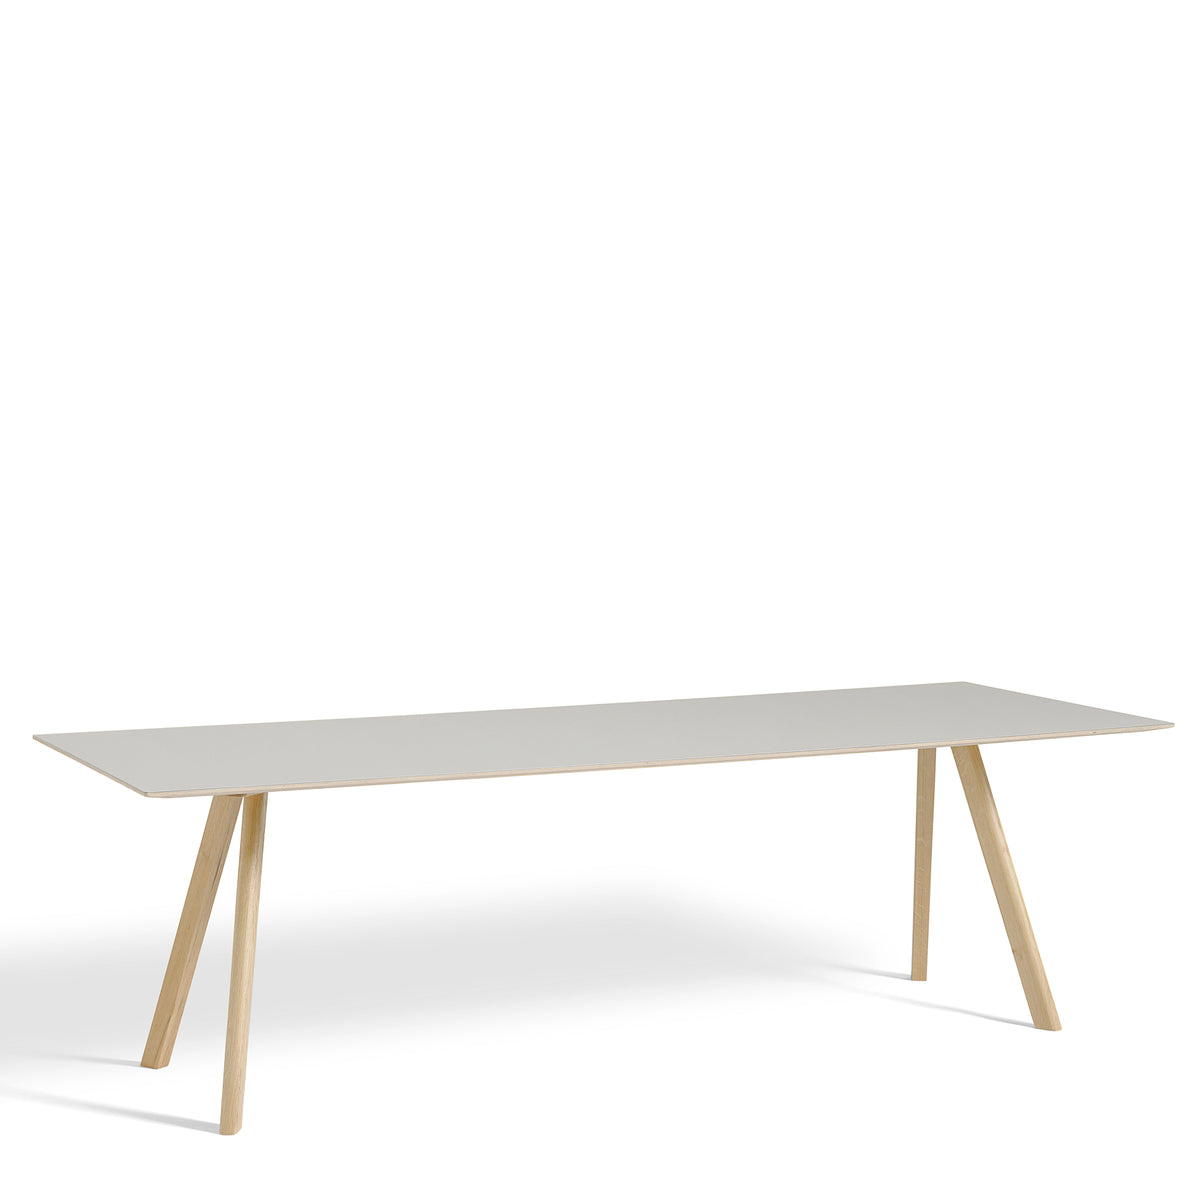 HAY CPH Table 2500mm Forbo Mushroom 4176 with Matt Lacquered Oak Base